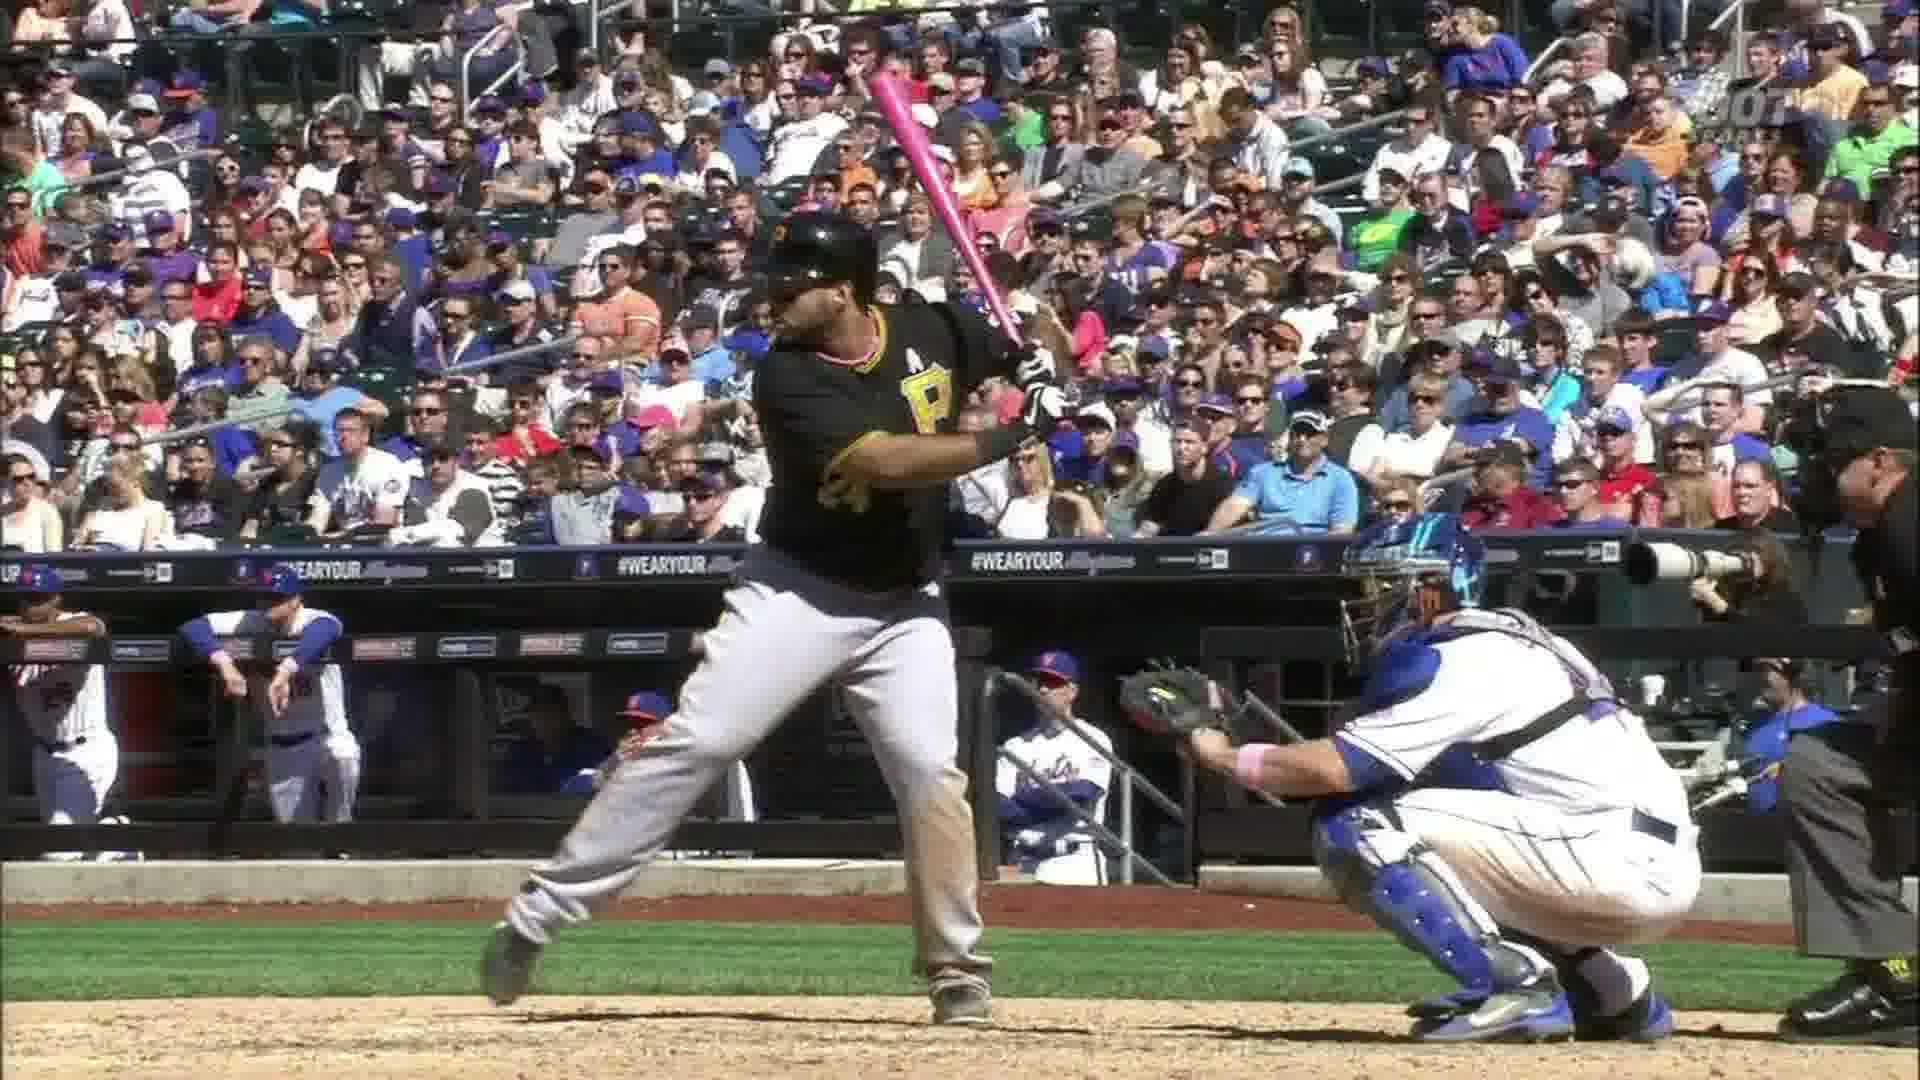 Pedro Alvarez drives home the winning run against the Mets.